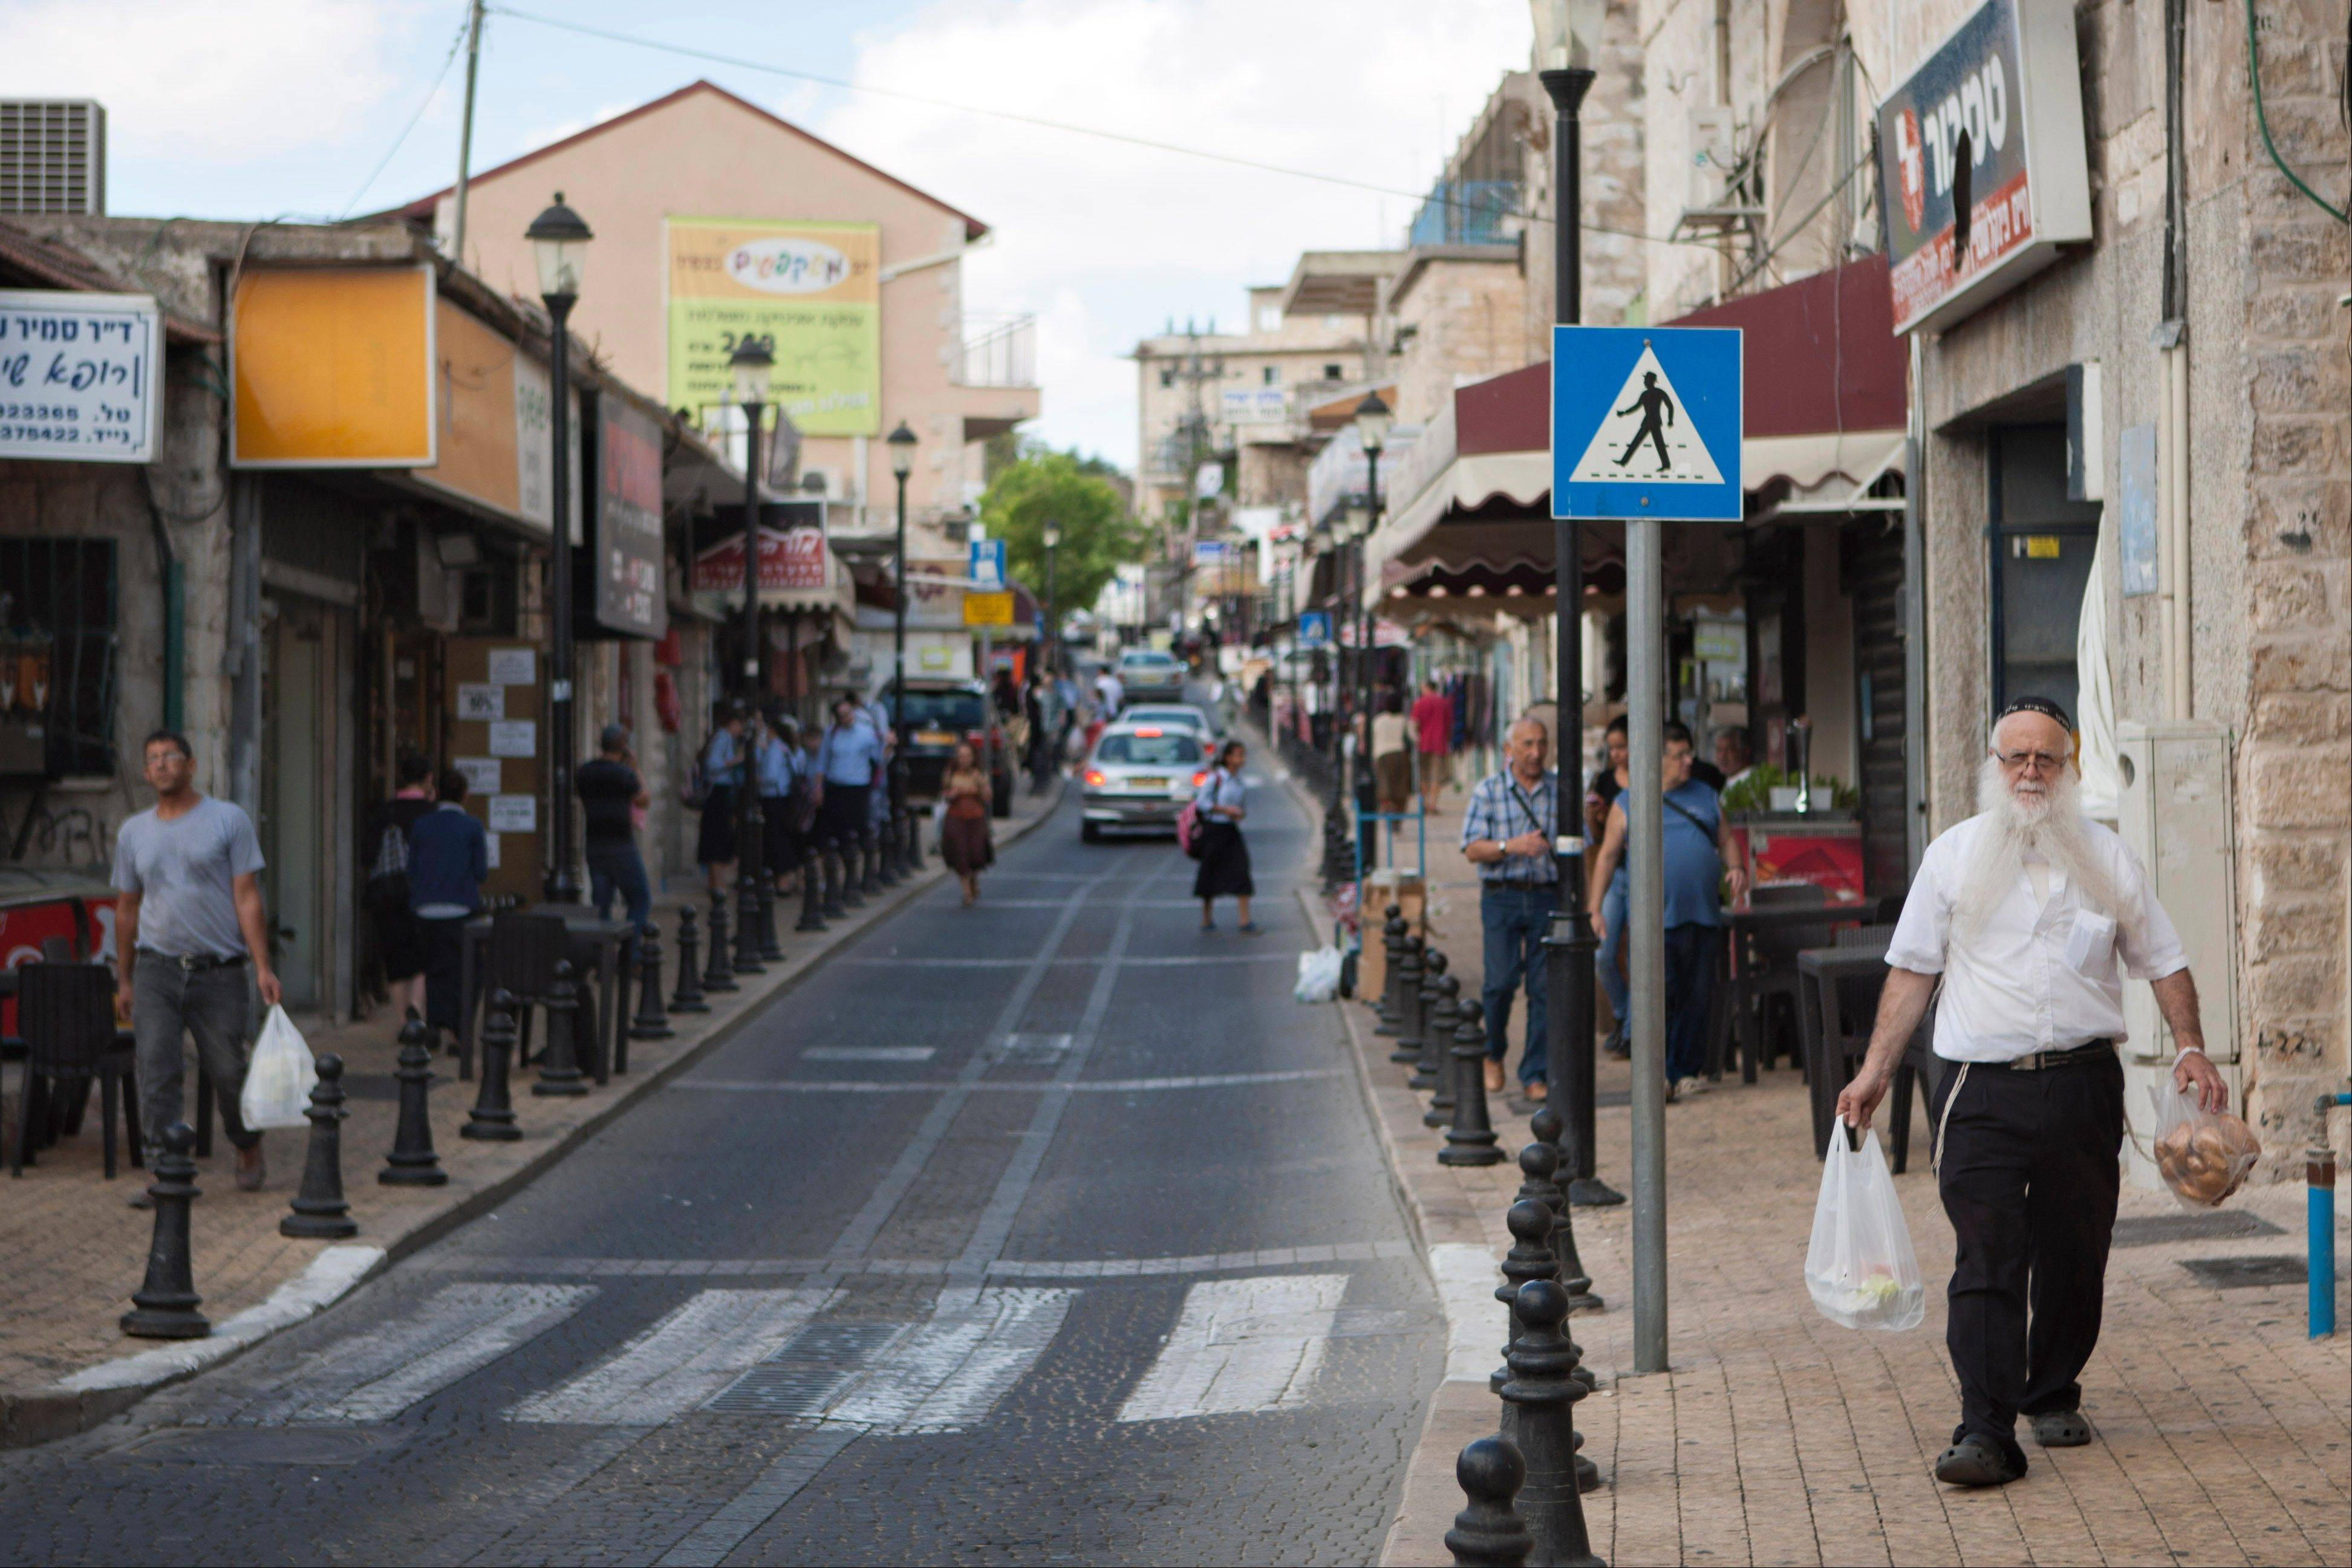 People walk the street of Safed, Israel. Its distant location, several hours from Tel Aviv and Jerusalem, doesn't stop hundreds of thousands of people from visiting each year to get up close with kabbalah's origins and the Jewish mystics who defined it 500 years ago.